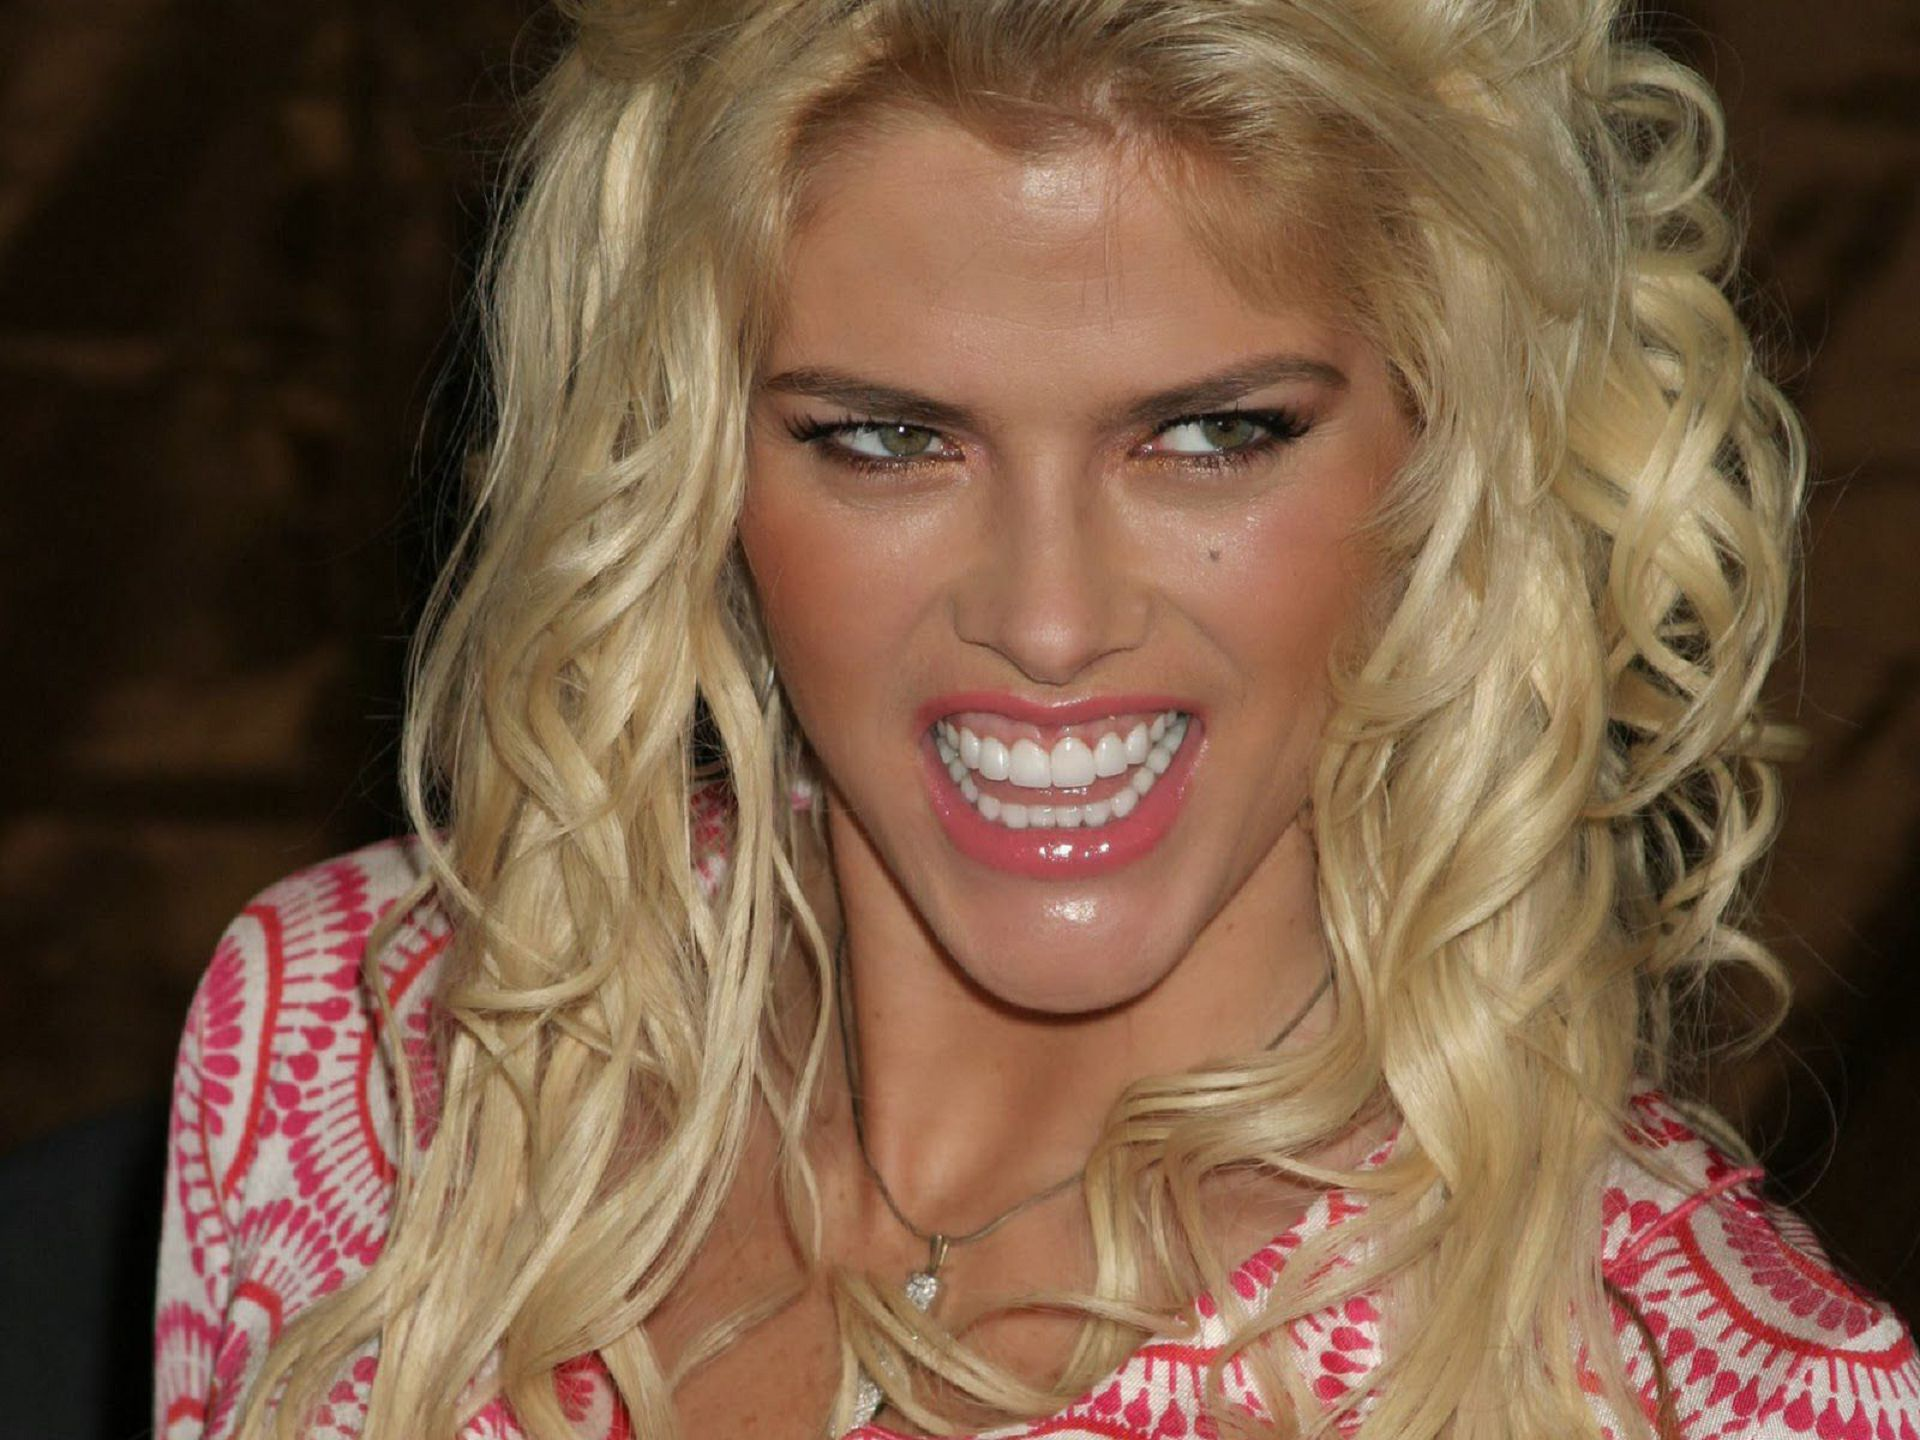 Anna Nicole Smith Wallpaper Pack